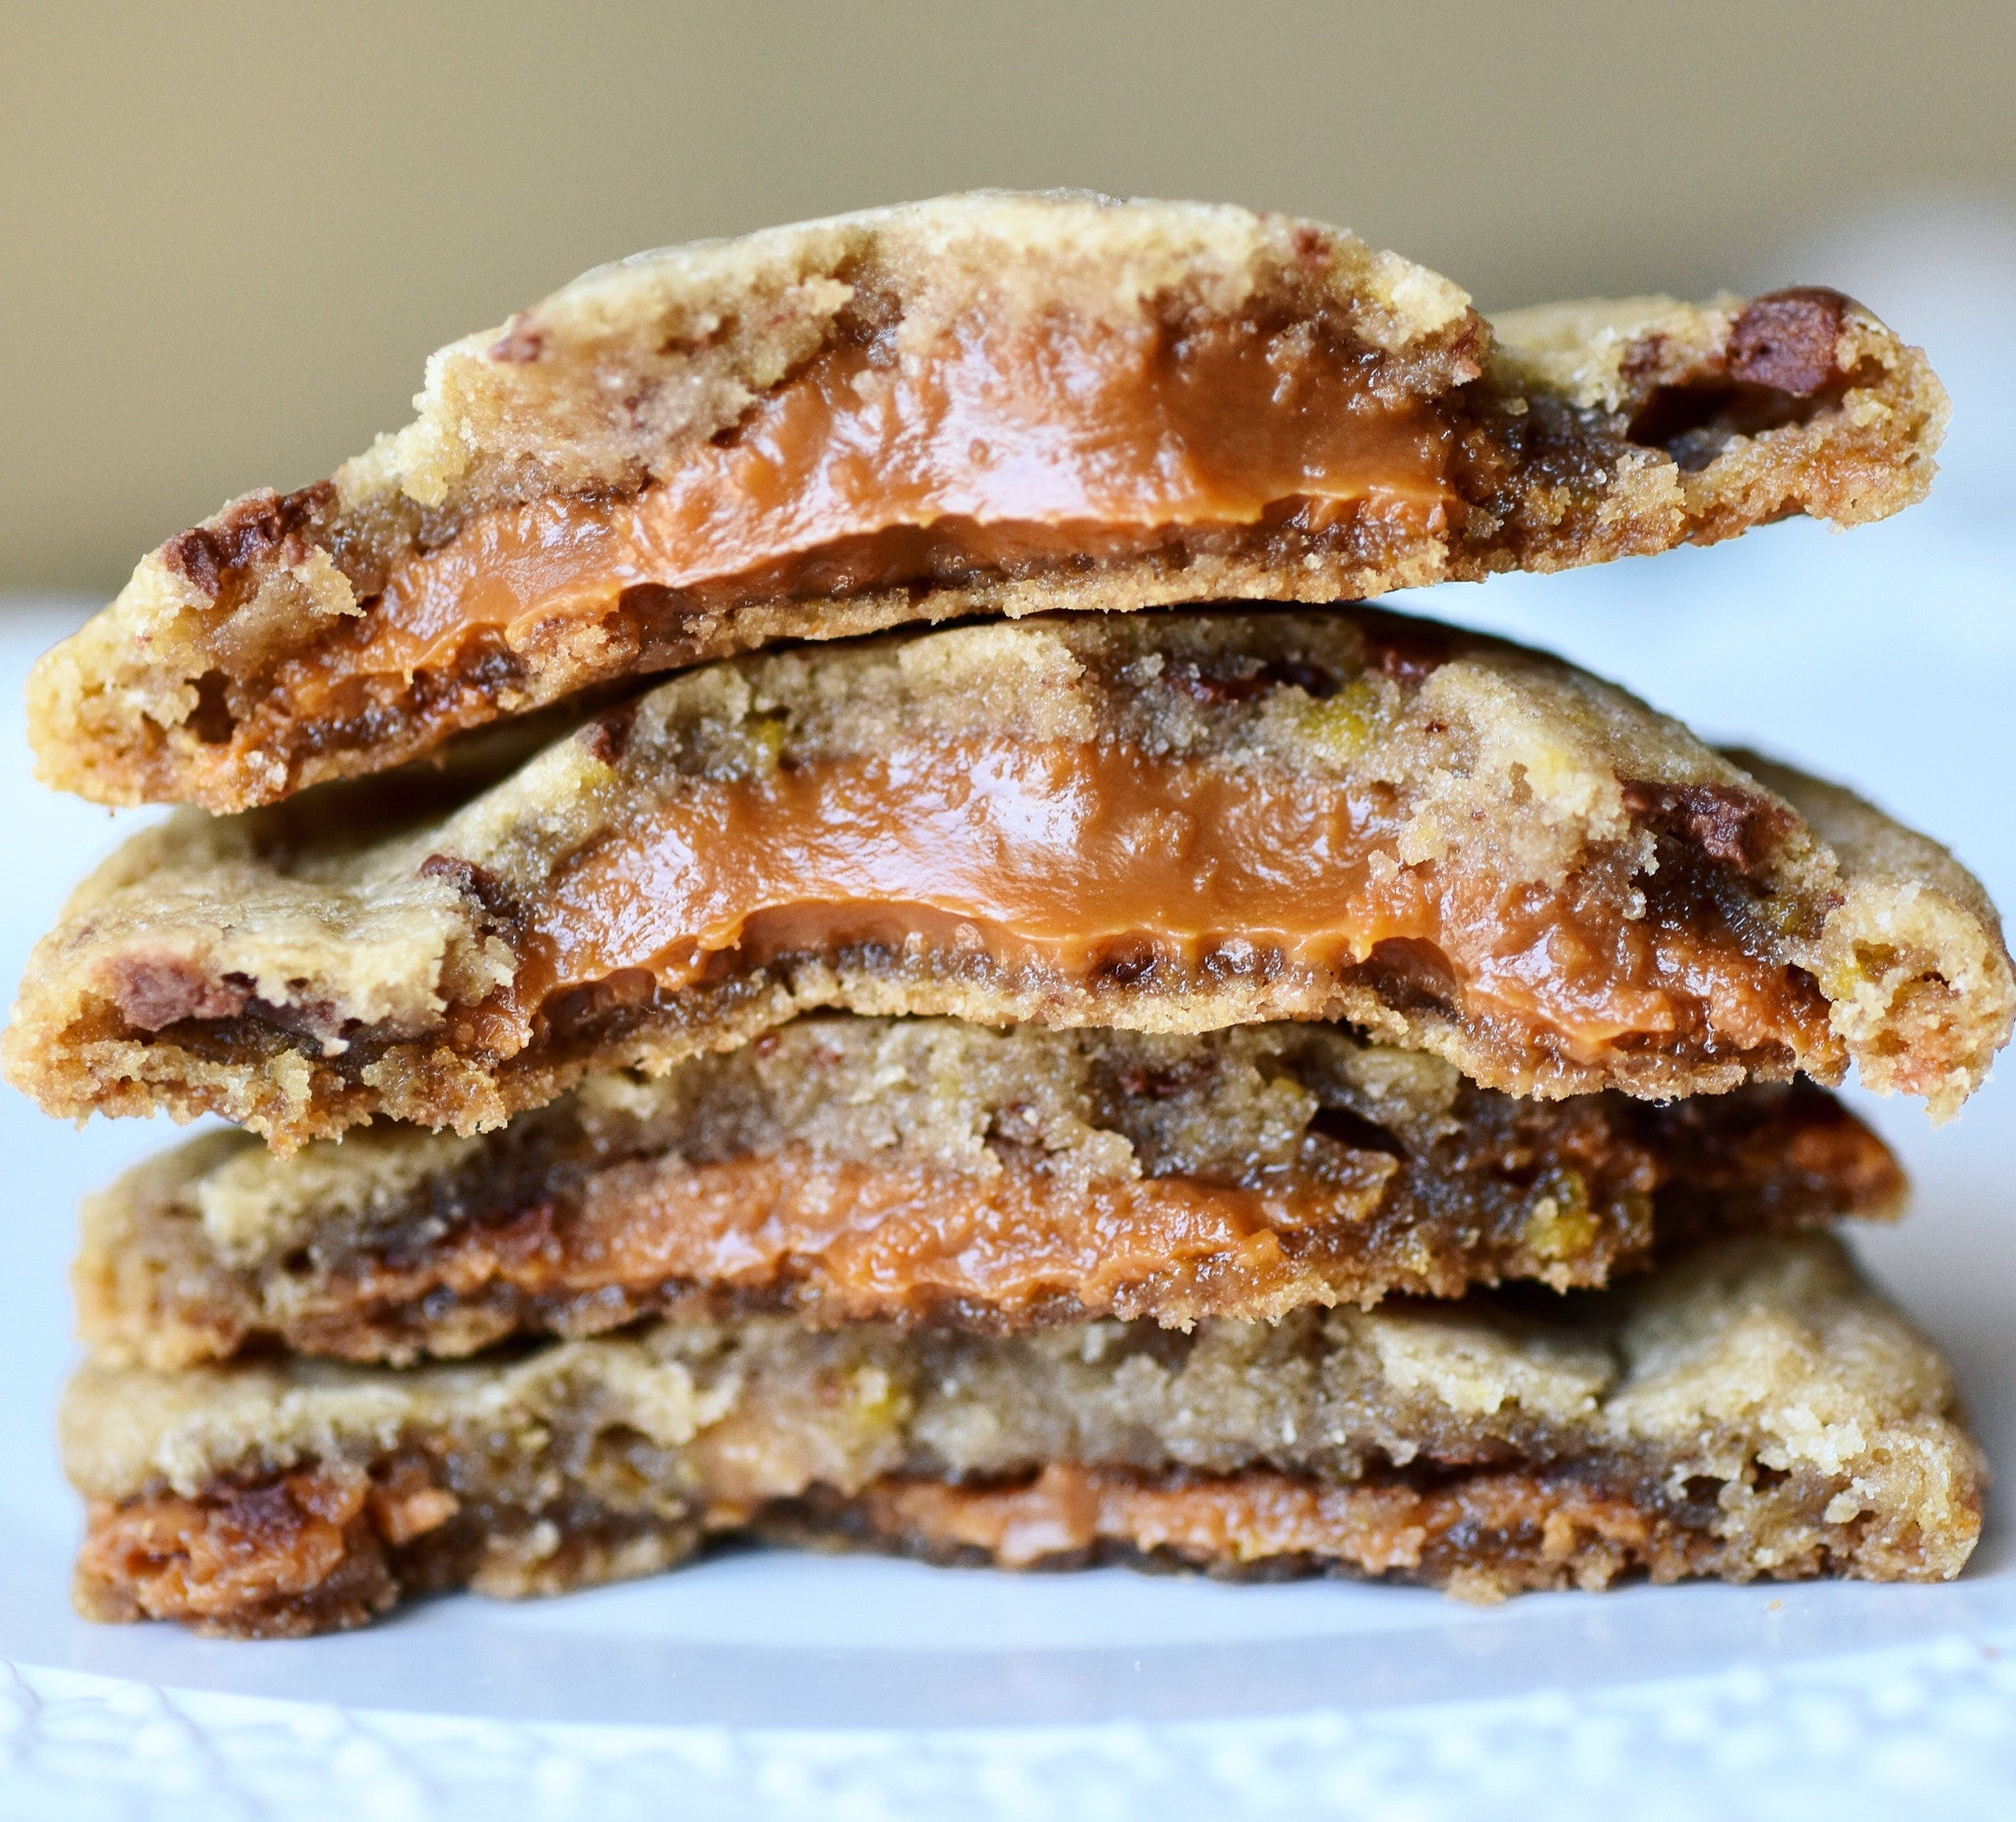 DULCE DE LECHE STUFFED COOKIES